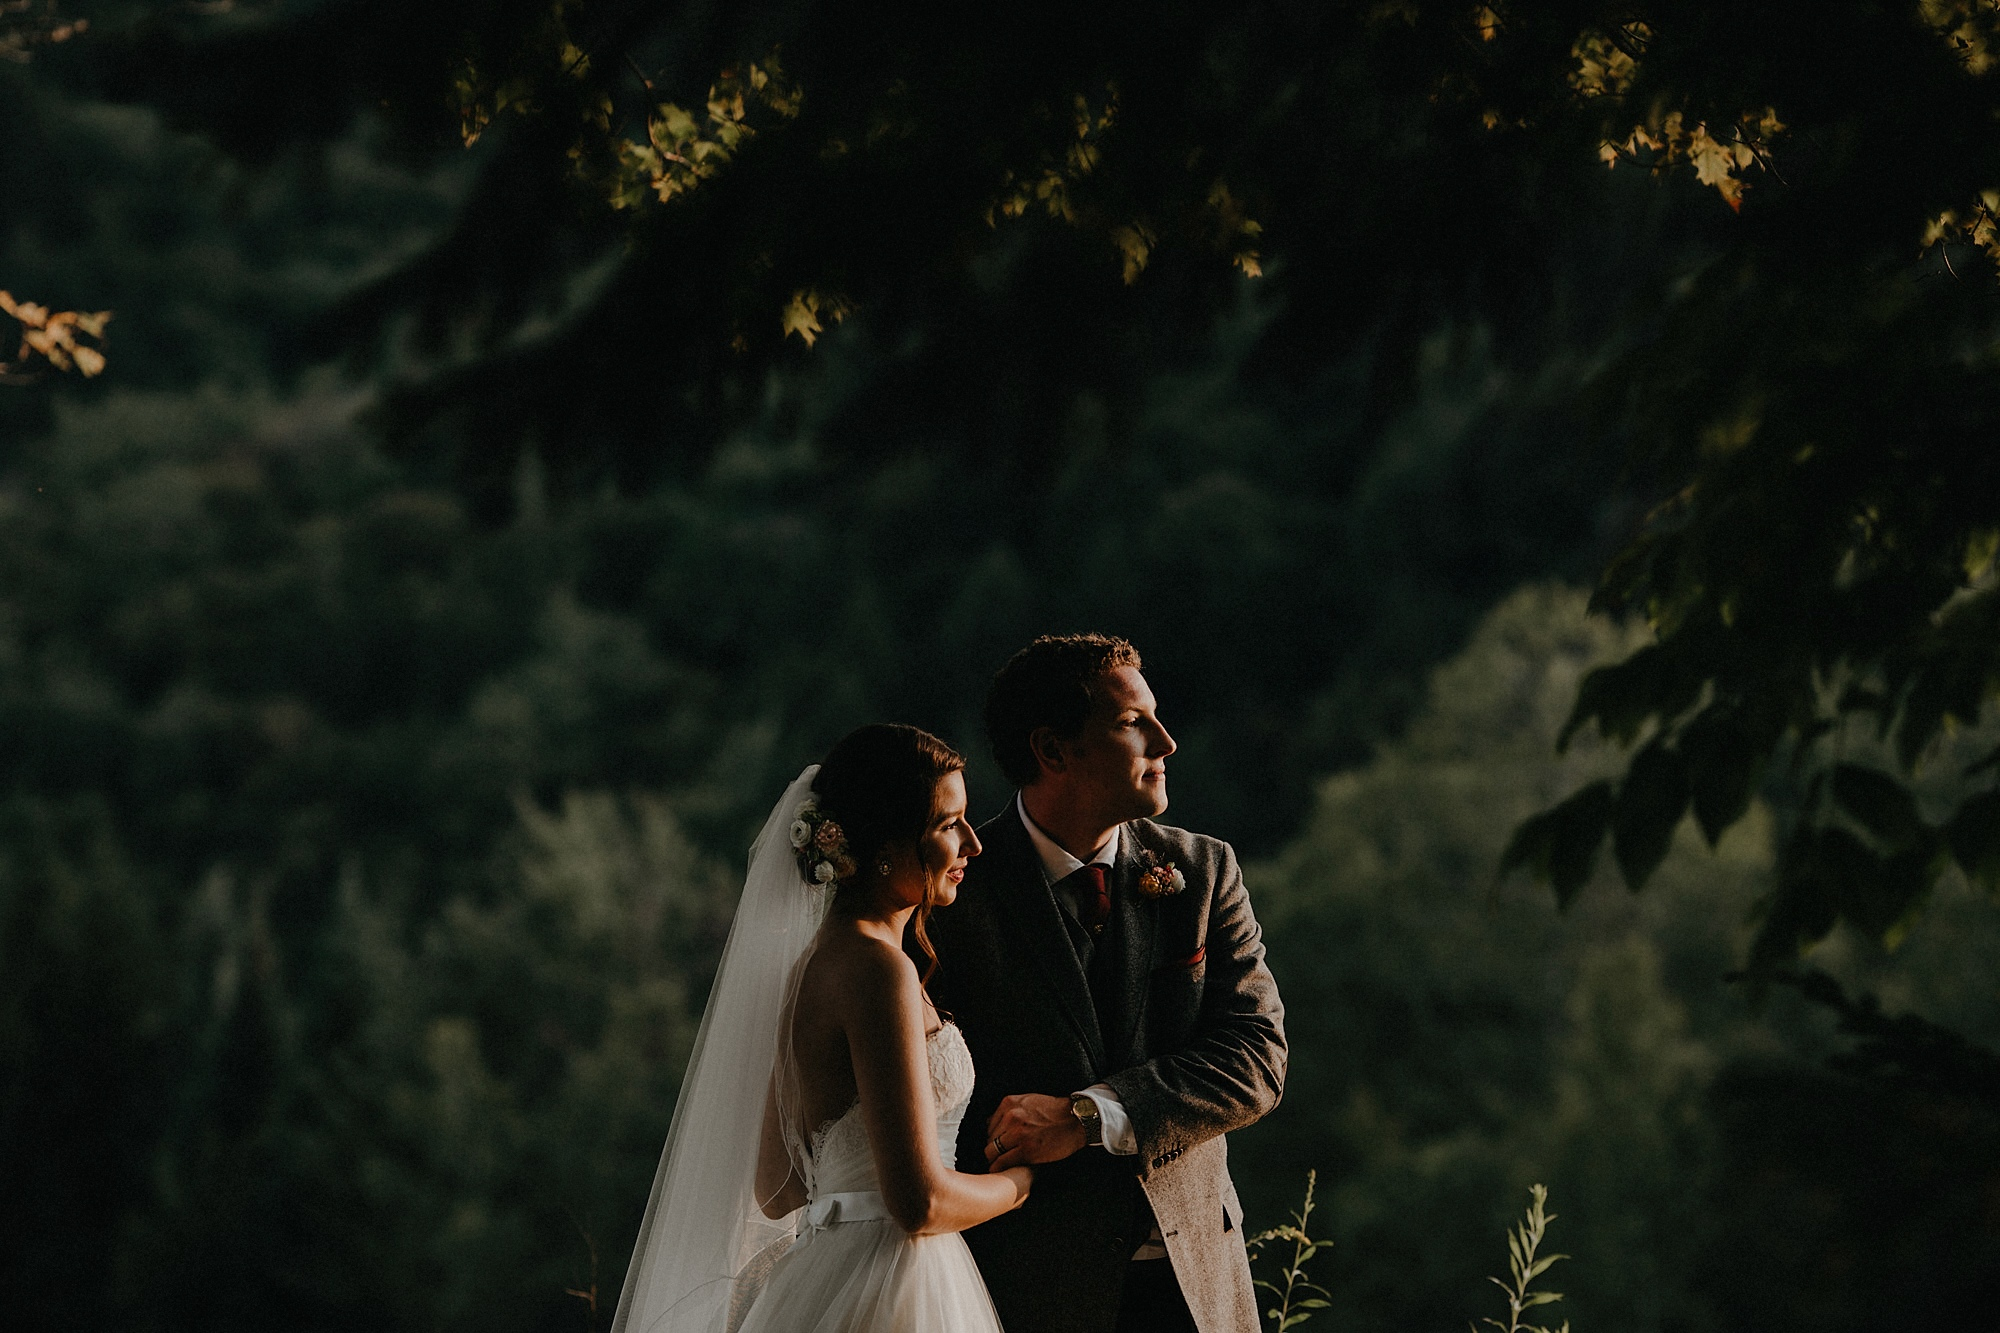 intimate wedding adventure elopement vermont forest sunset portrait photo